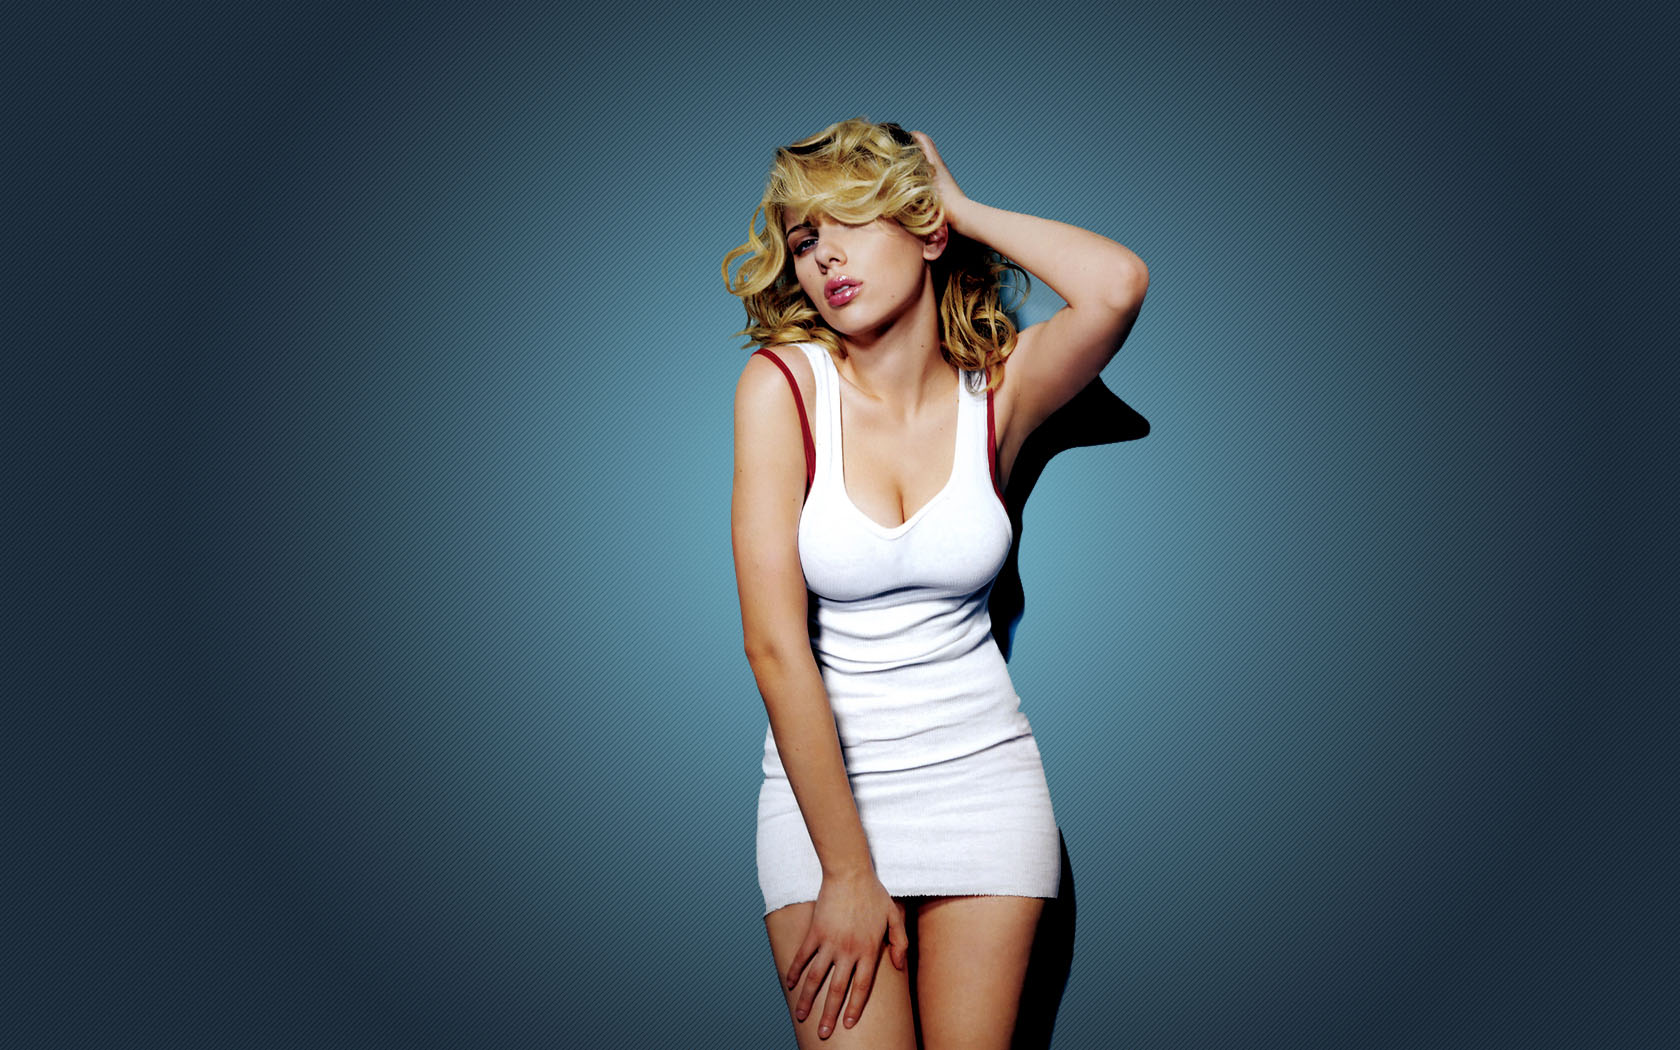 scarlett johansson photos wallpaper high definition